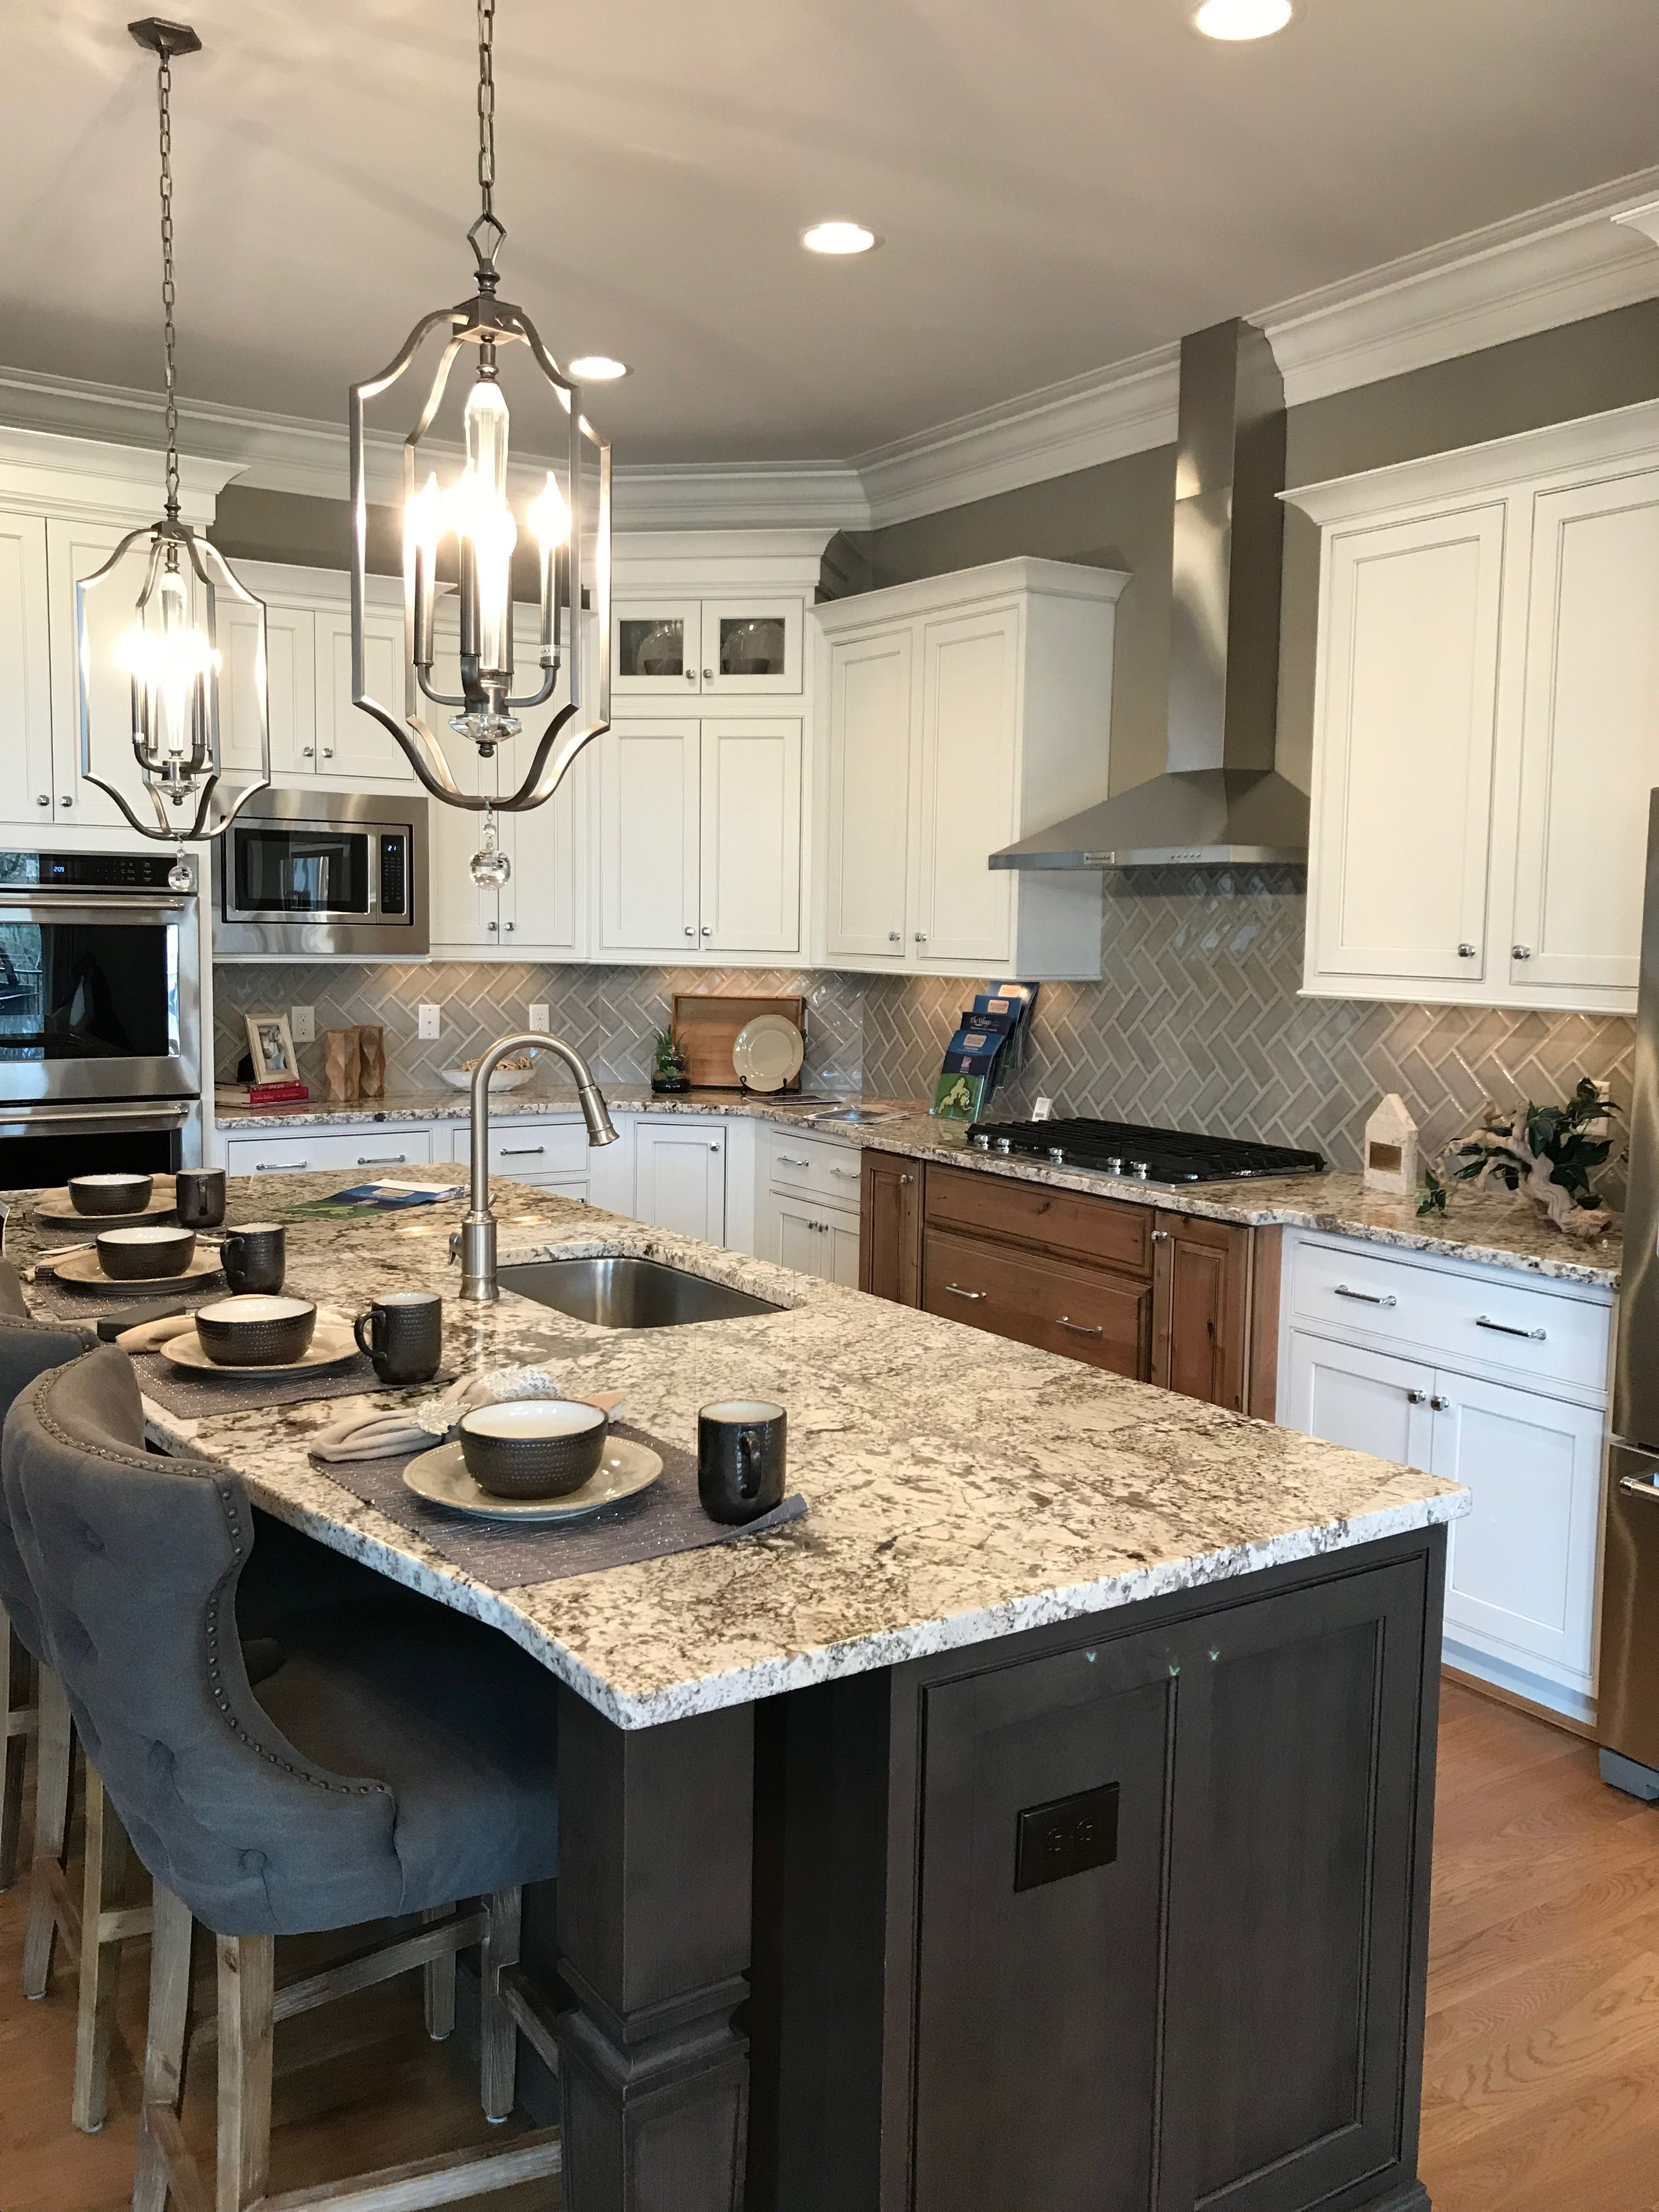 Is Mixing Kitchen Cabinet Finishes Okay Or Not: Mixed Cabinet Colors; Probably Prefer 2 Rather Than 3